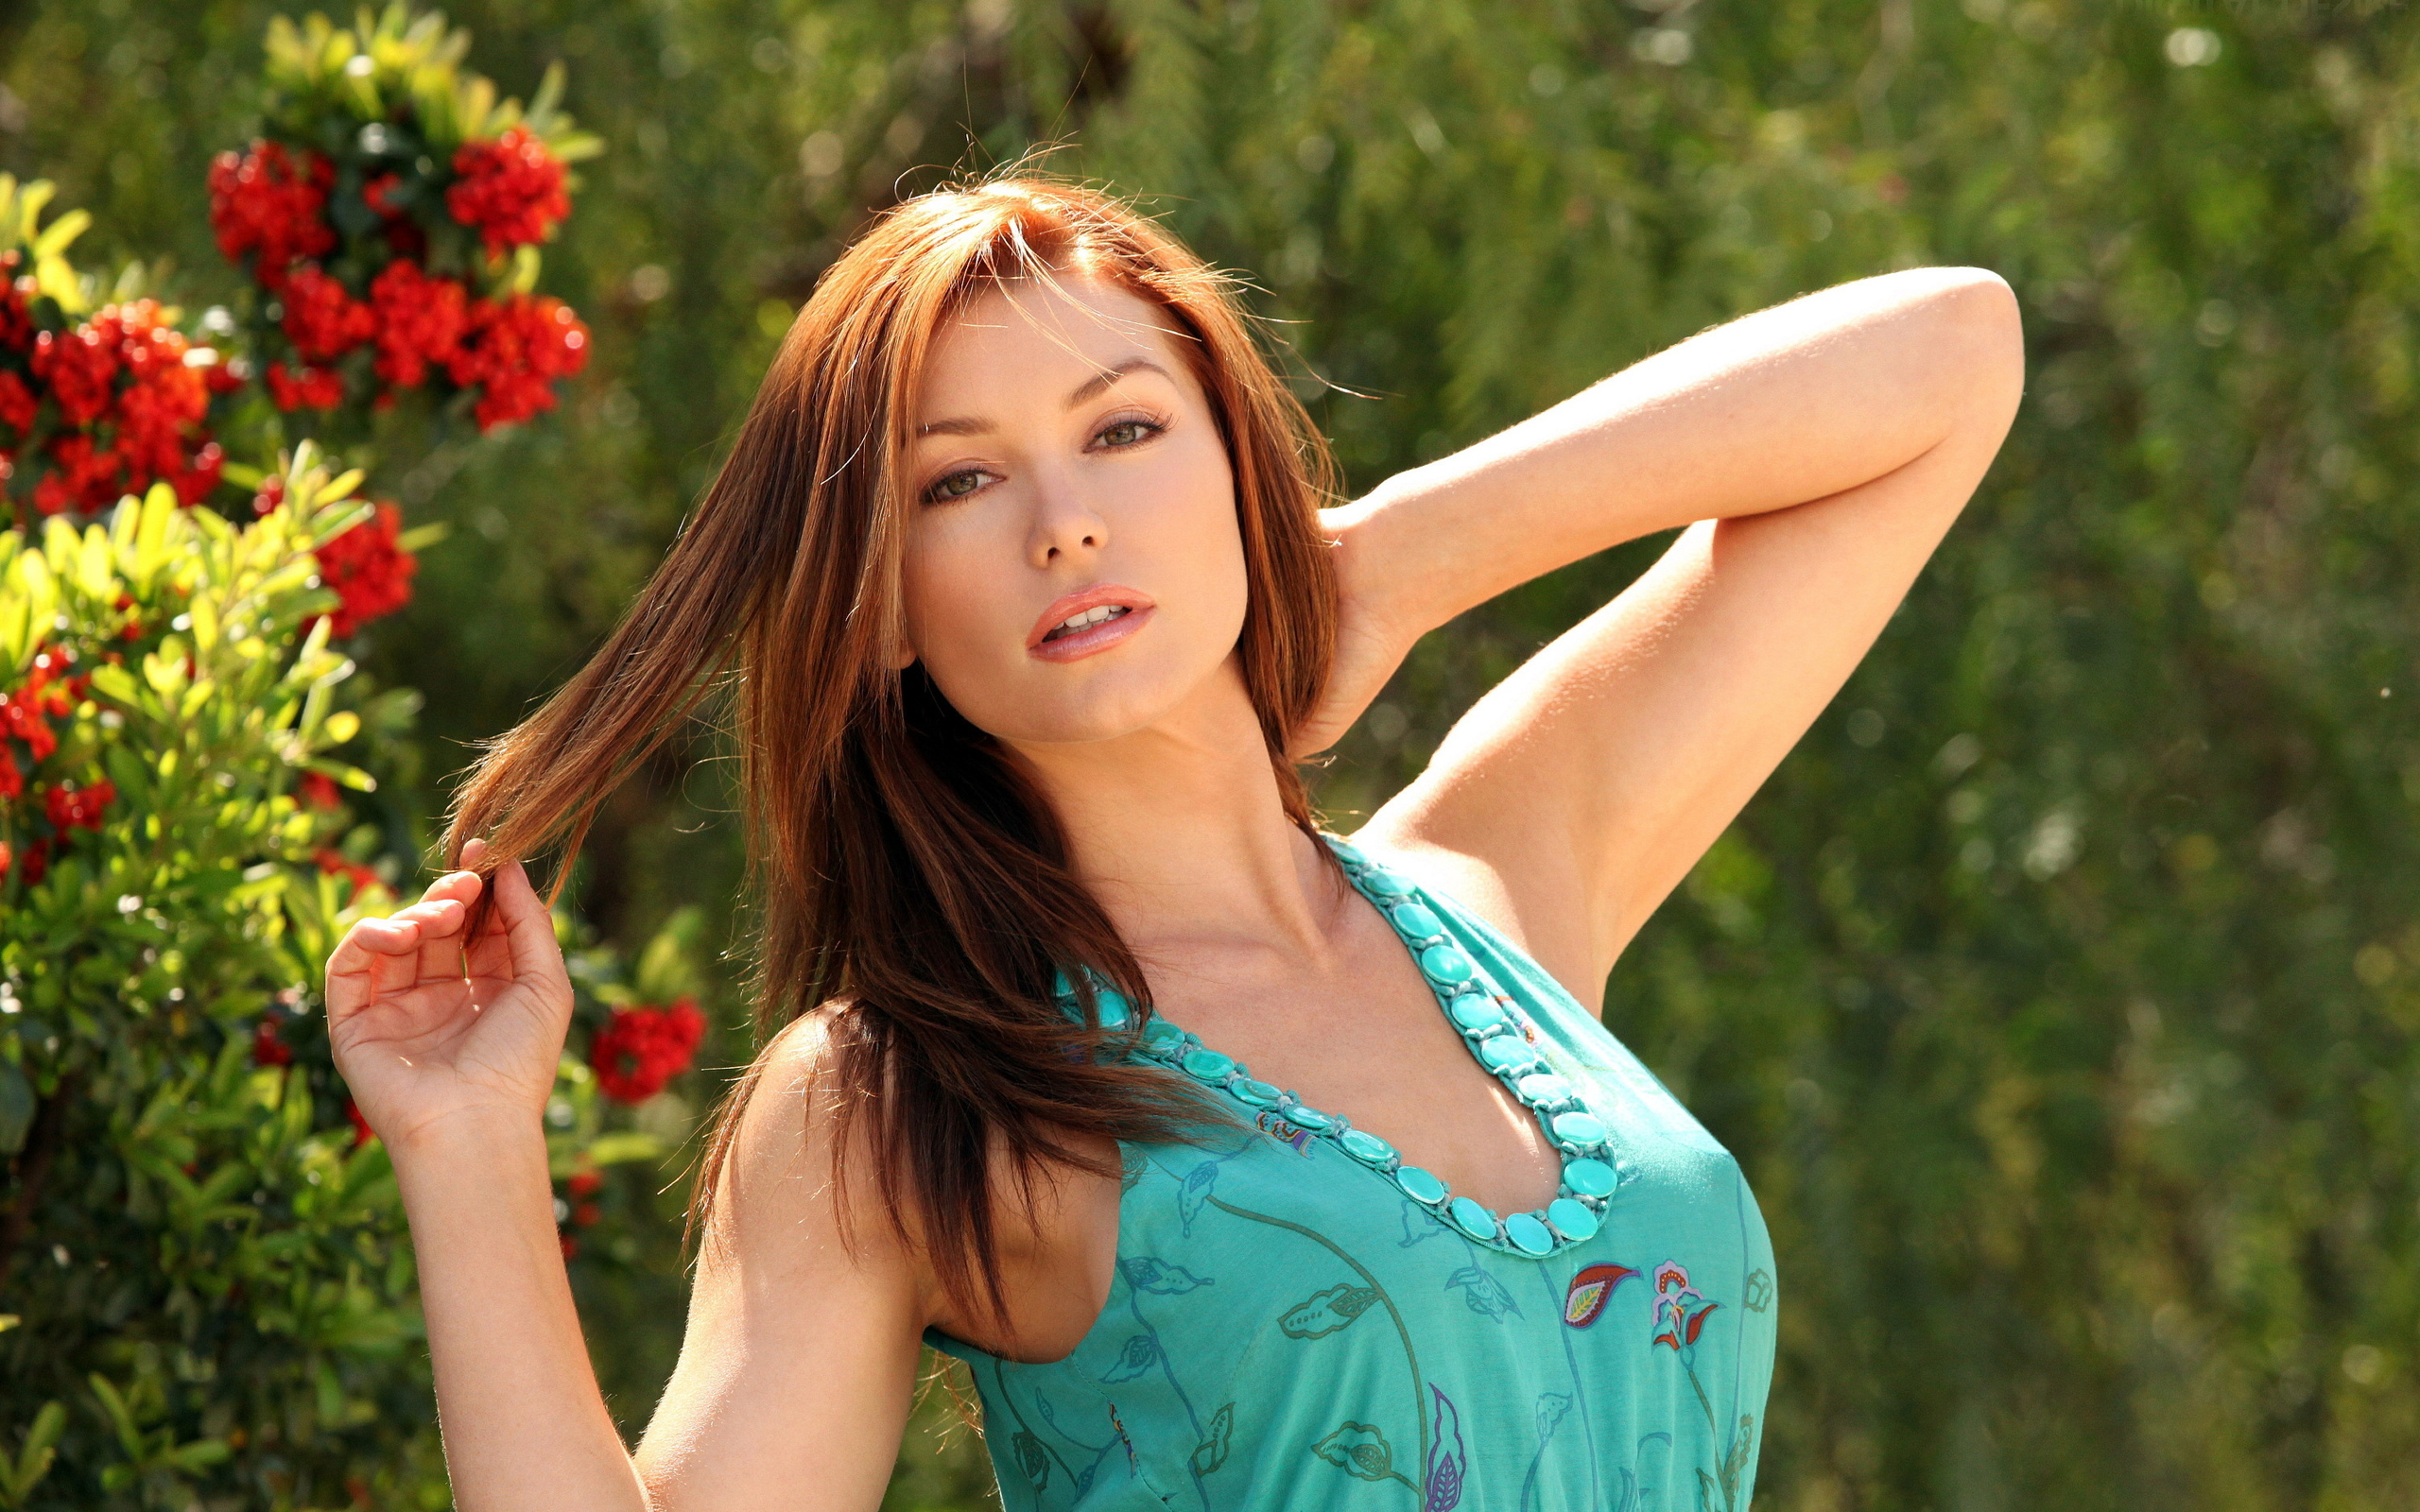 sexy, heather vandeven, model, cute, beautiful